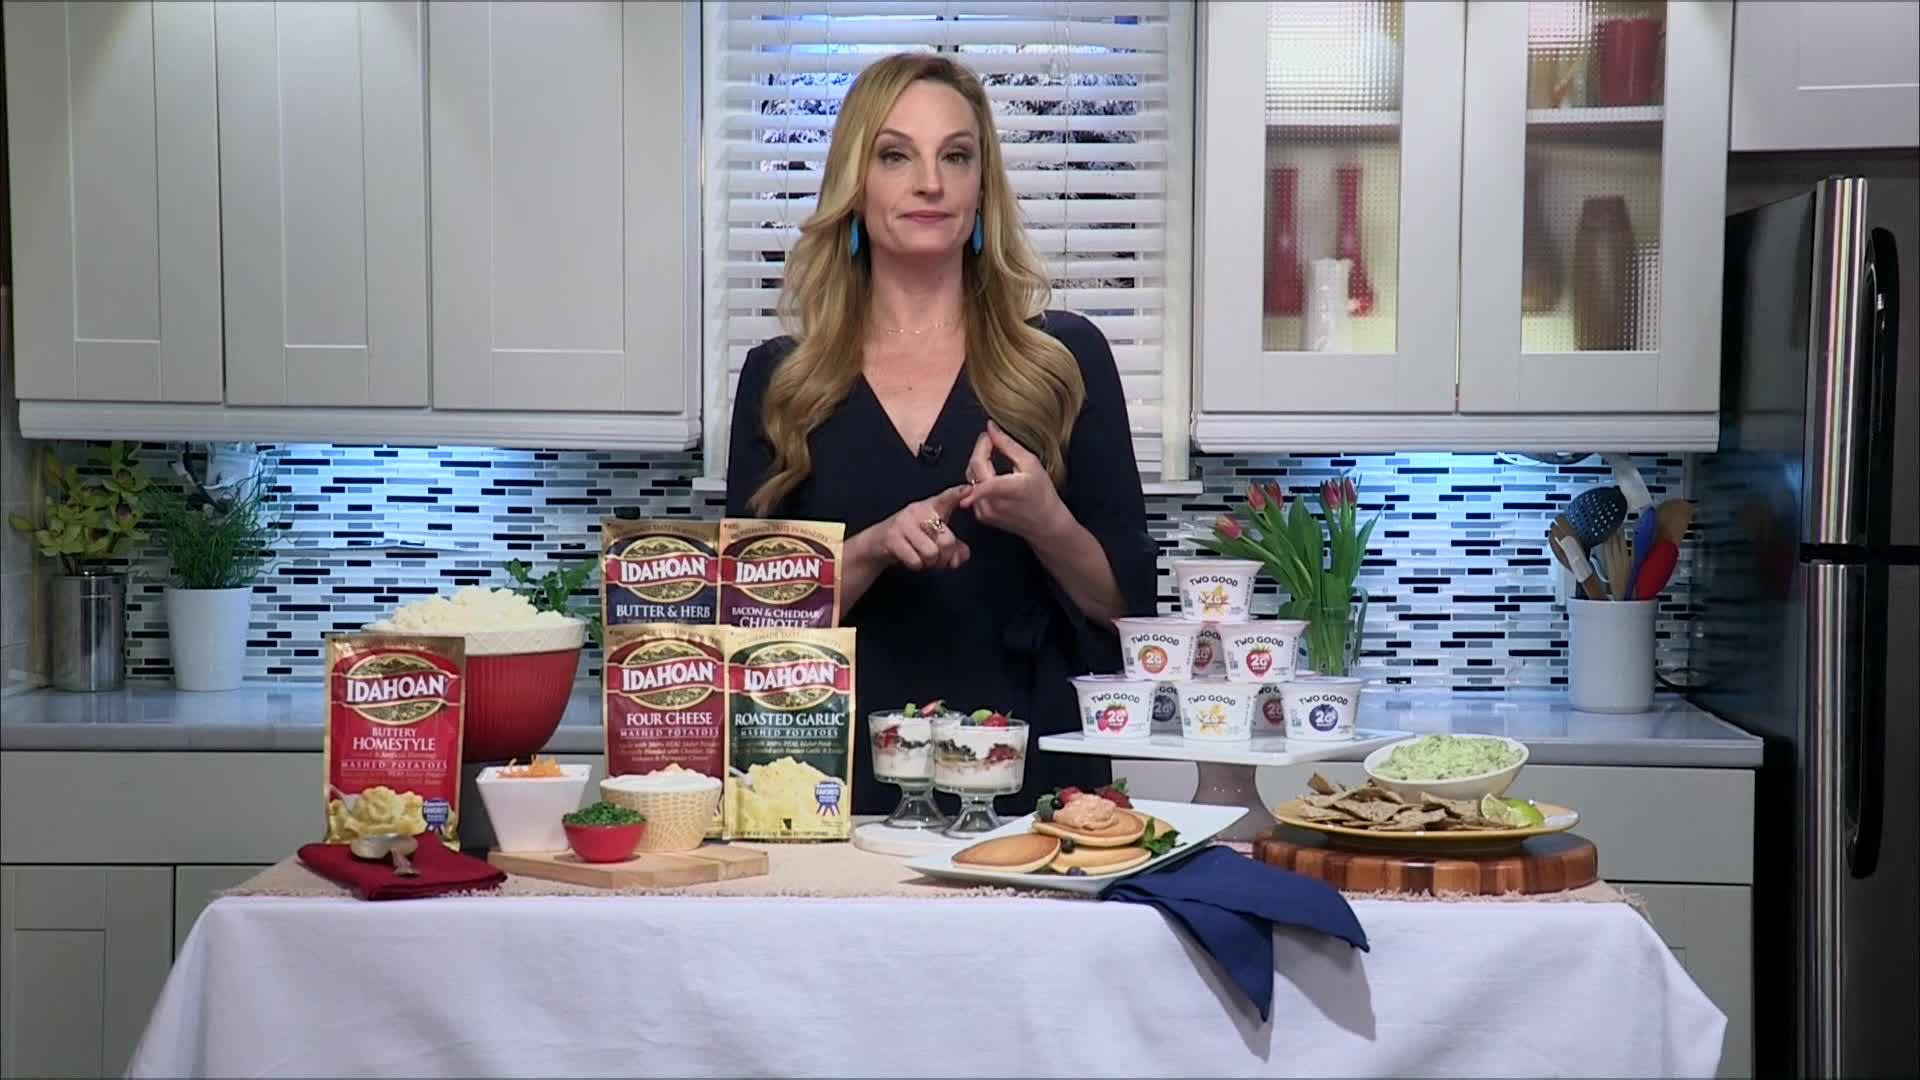 Get_Your_Pantry_Ready_For_Spring_Recipes_0_20190415150751